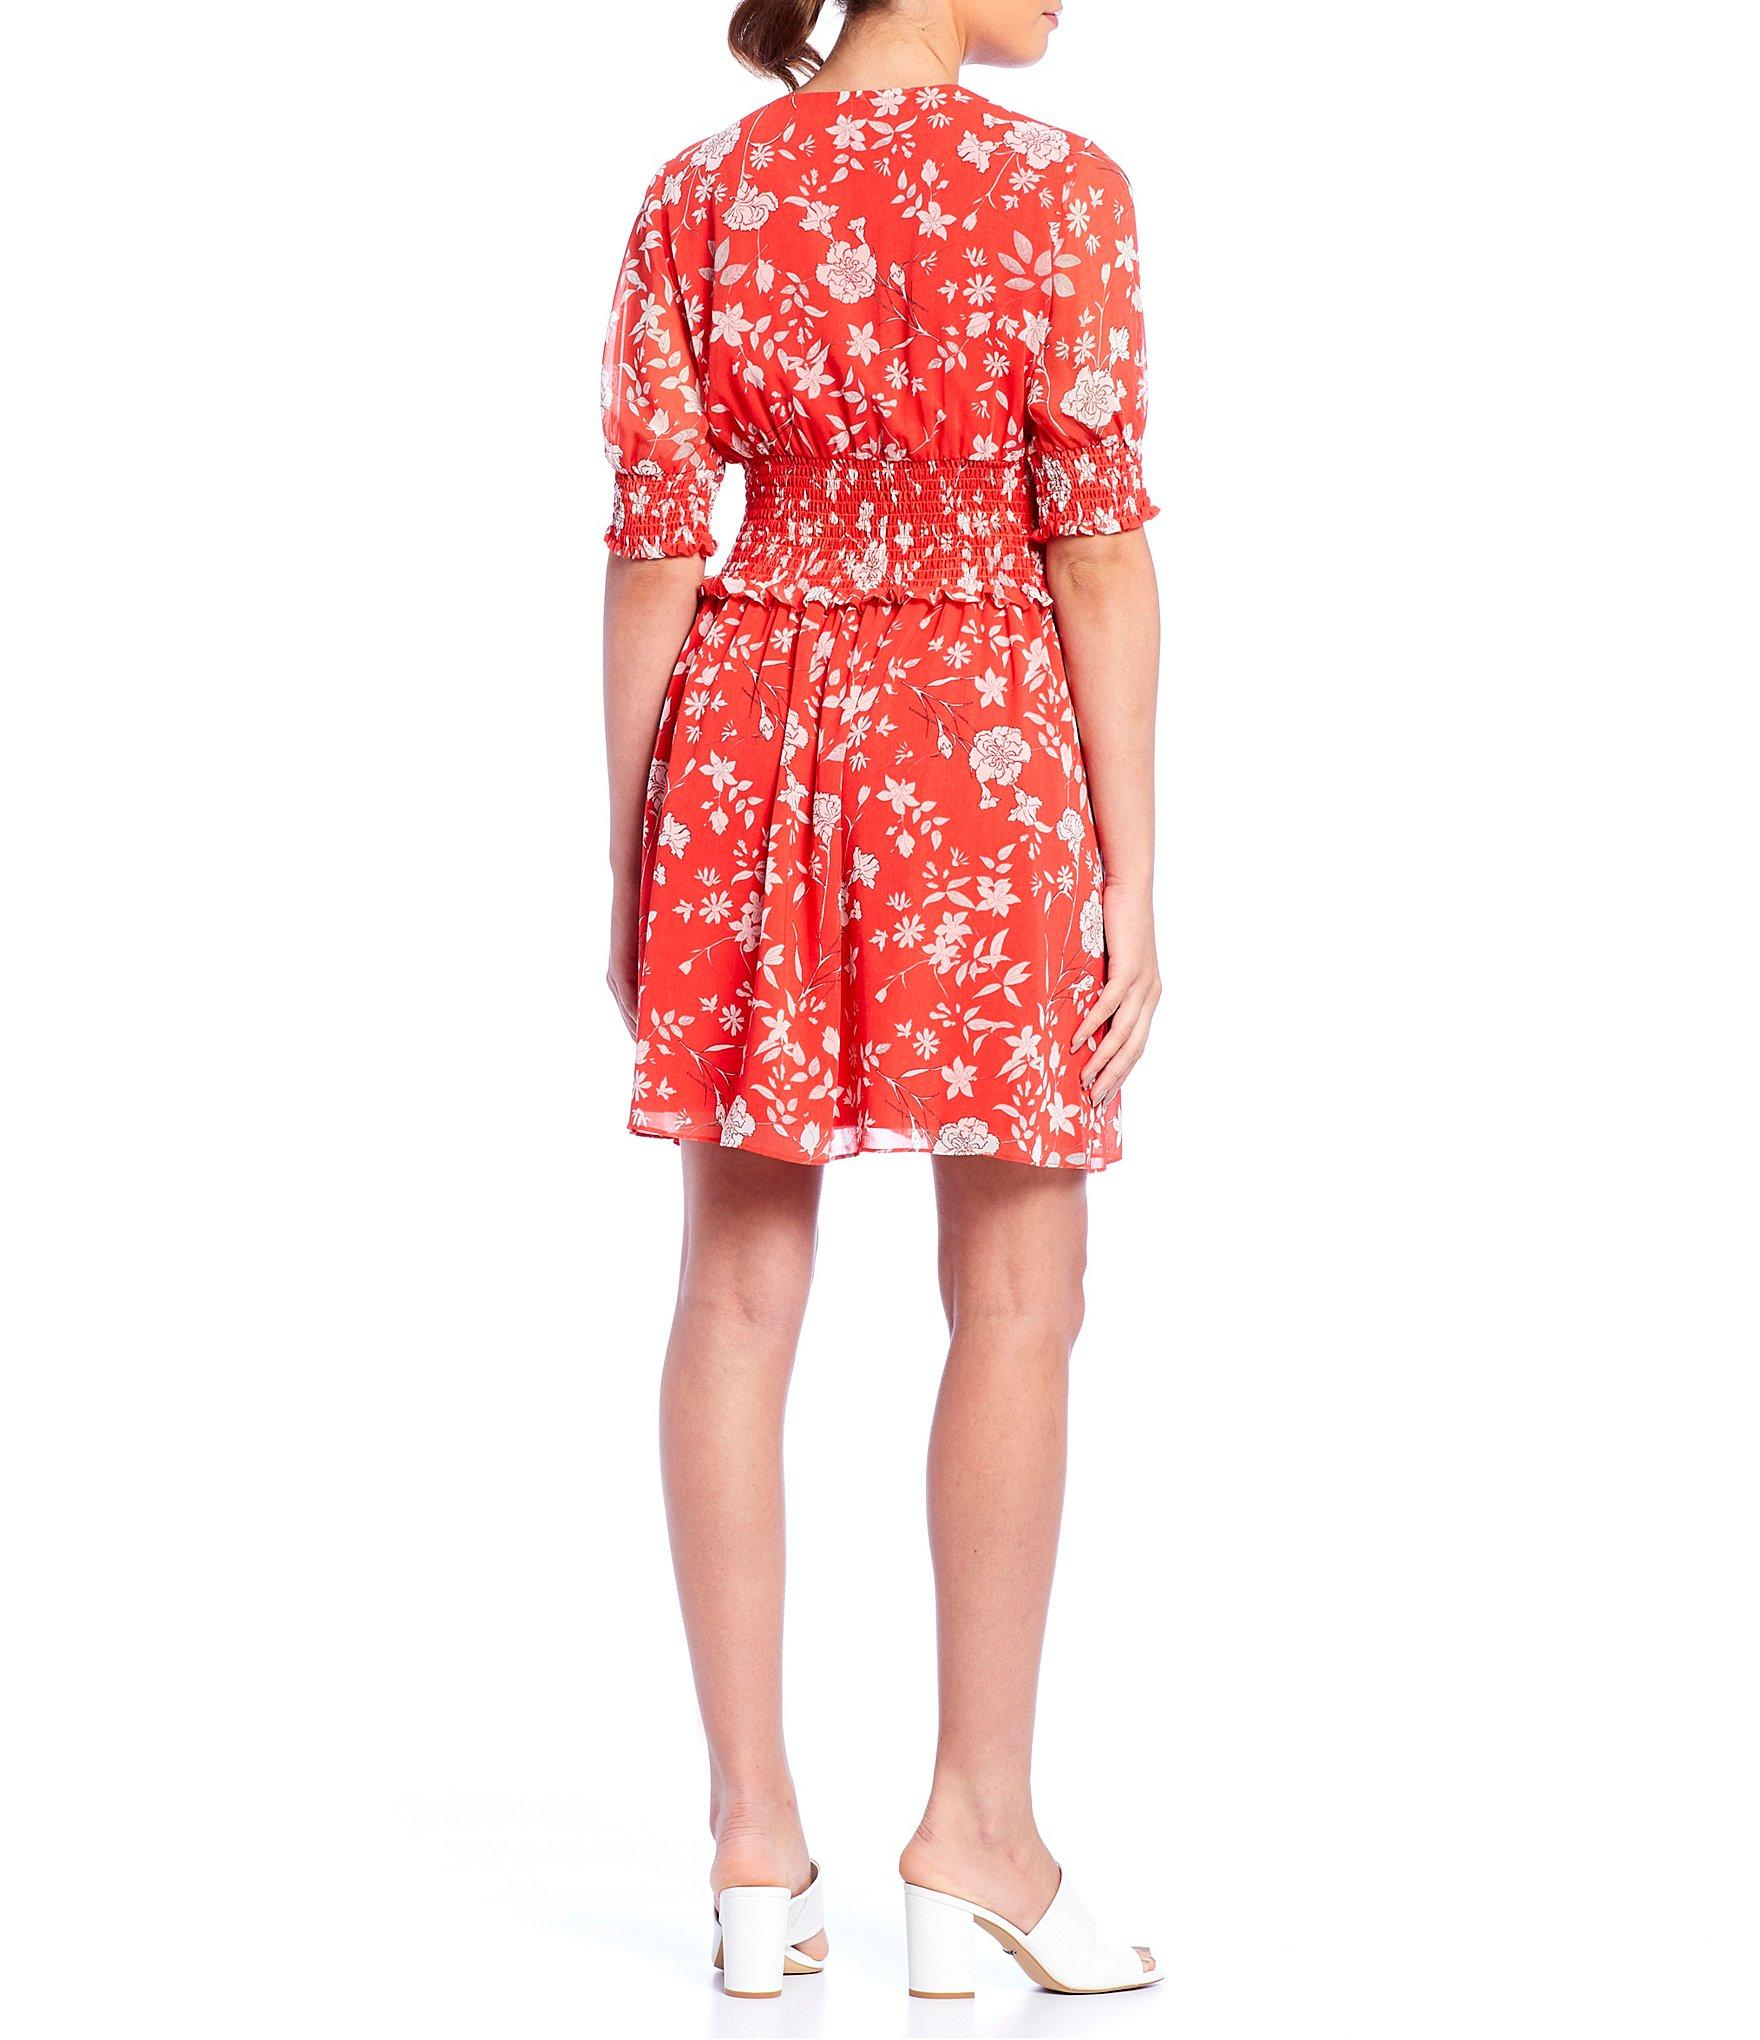 4f276e62577 Lyst - Gianni Bini Callie Floral Print Smocked Dress in Red